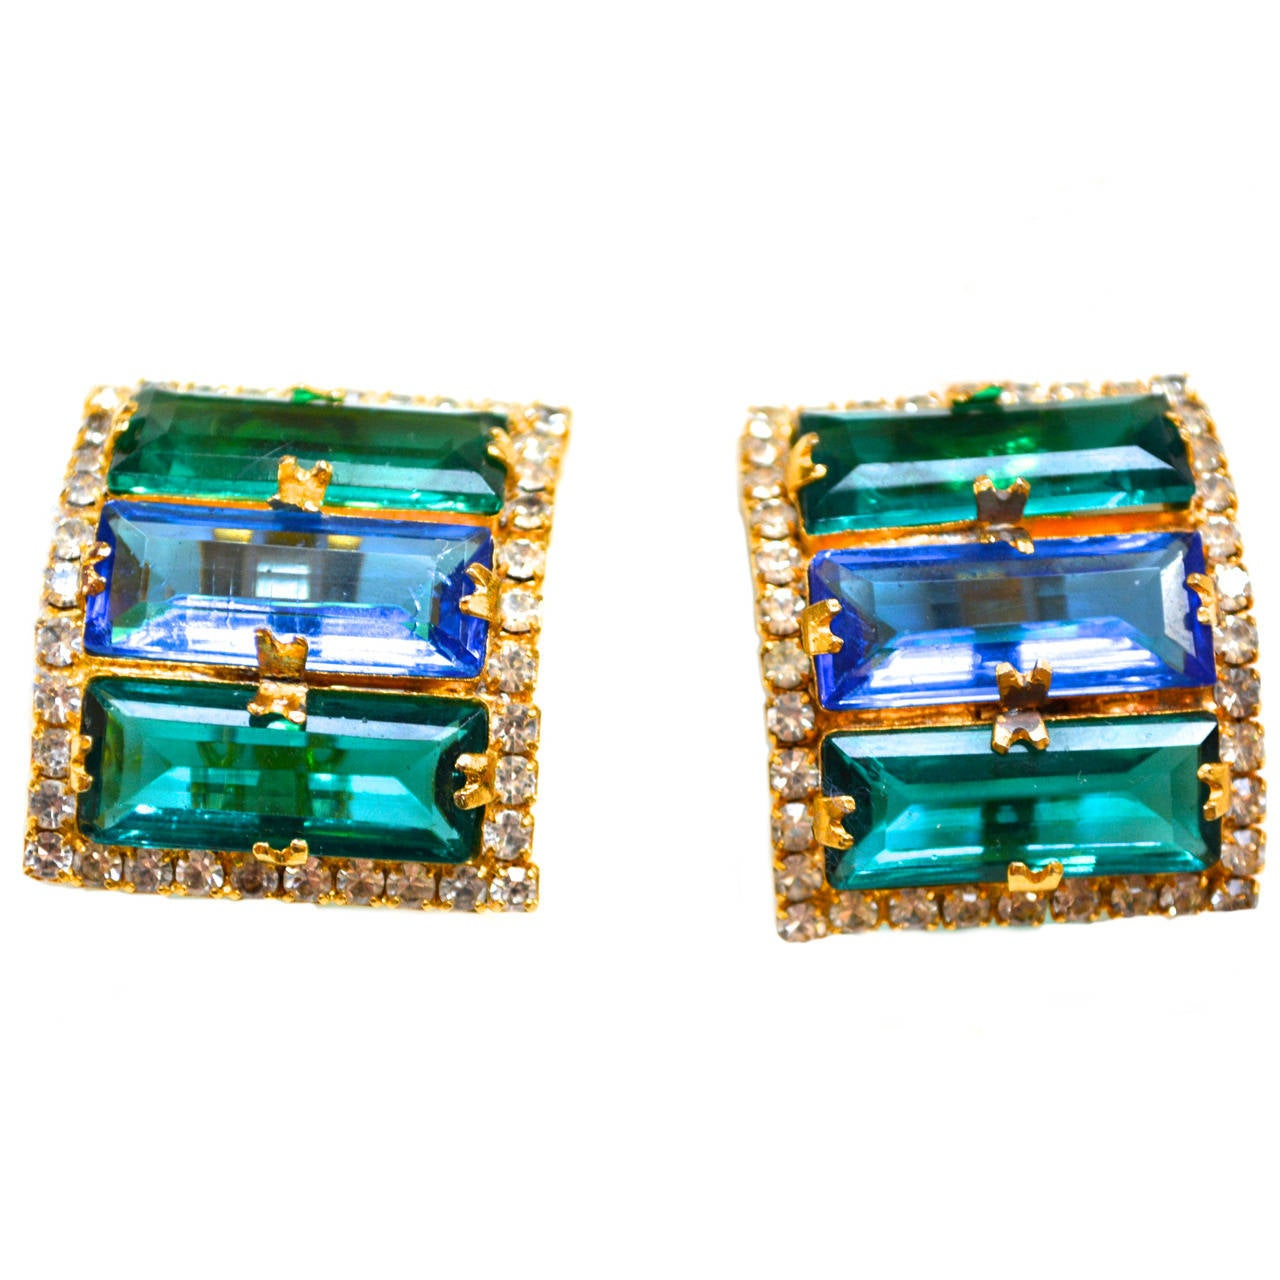 William De Lillo Glam Earrings For Sale